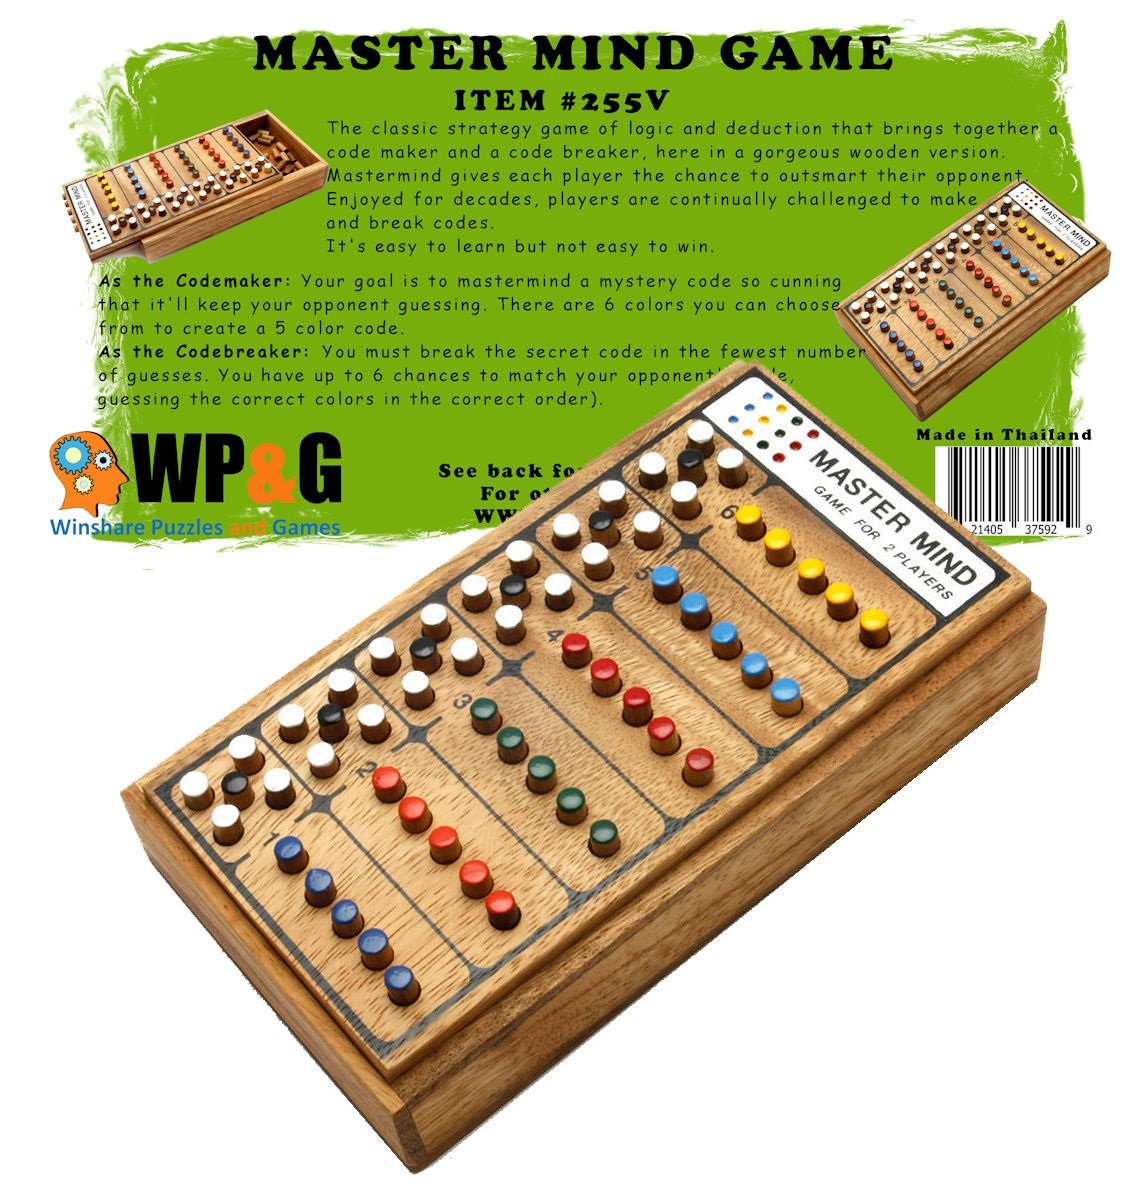 Game order colors - Amazon Com Mastermind Game Of Codemaker Vs Codebreaker Top Strategy Wooden Board Games For Kids And Adults Toys Games